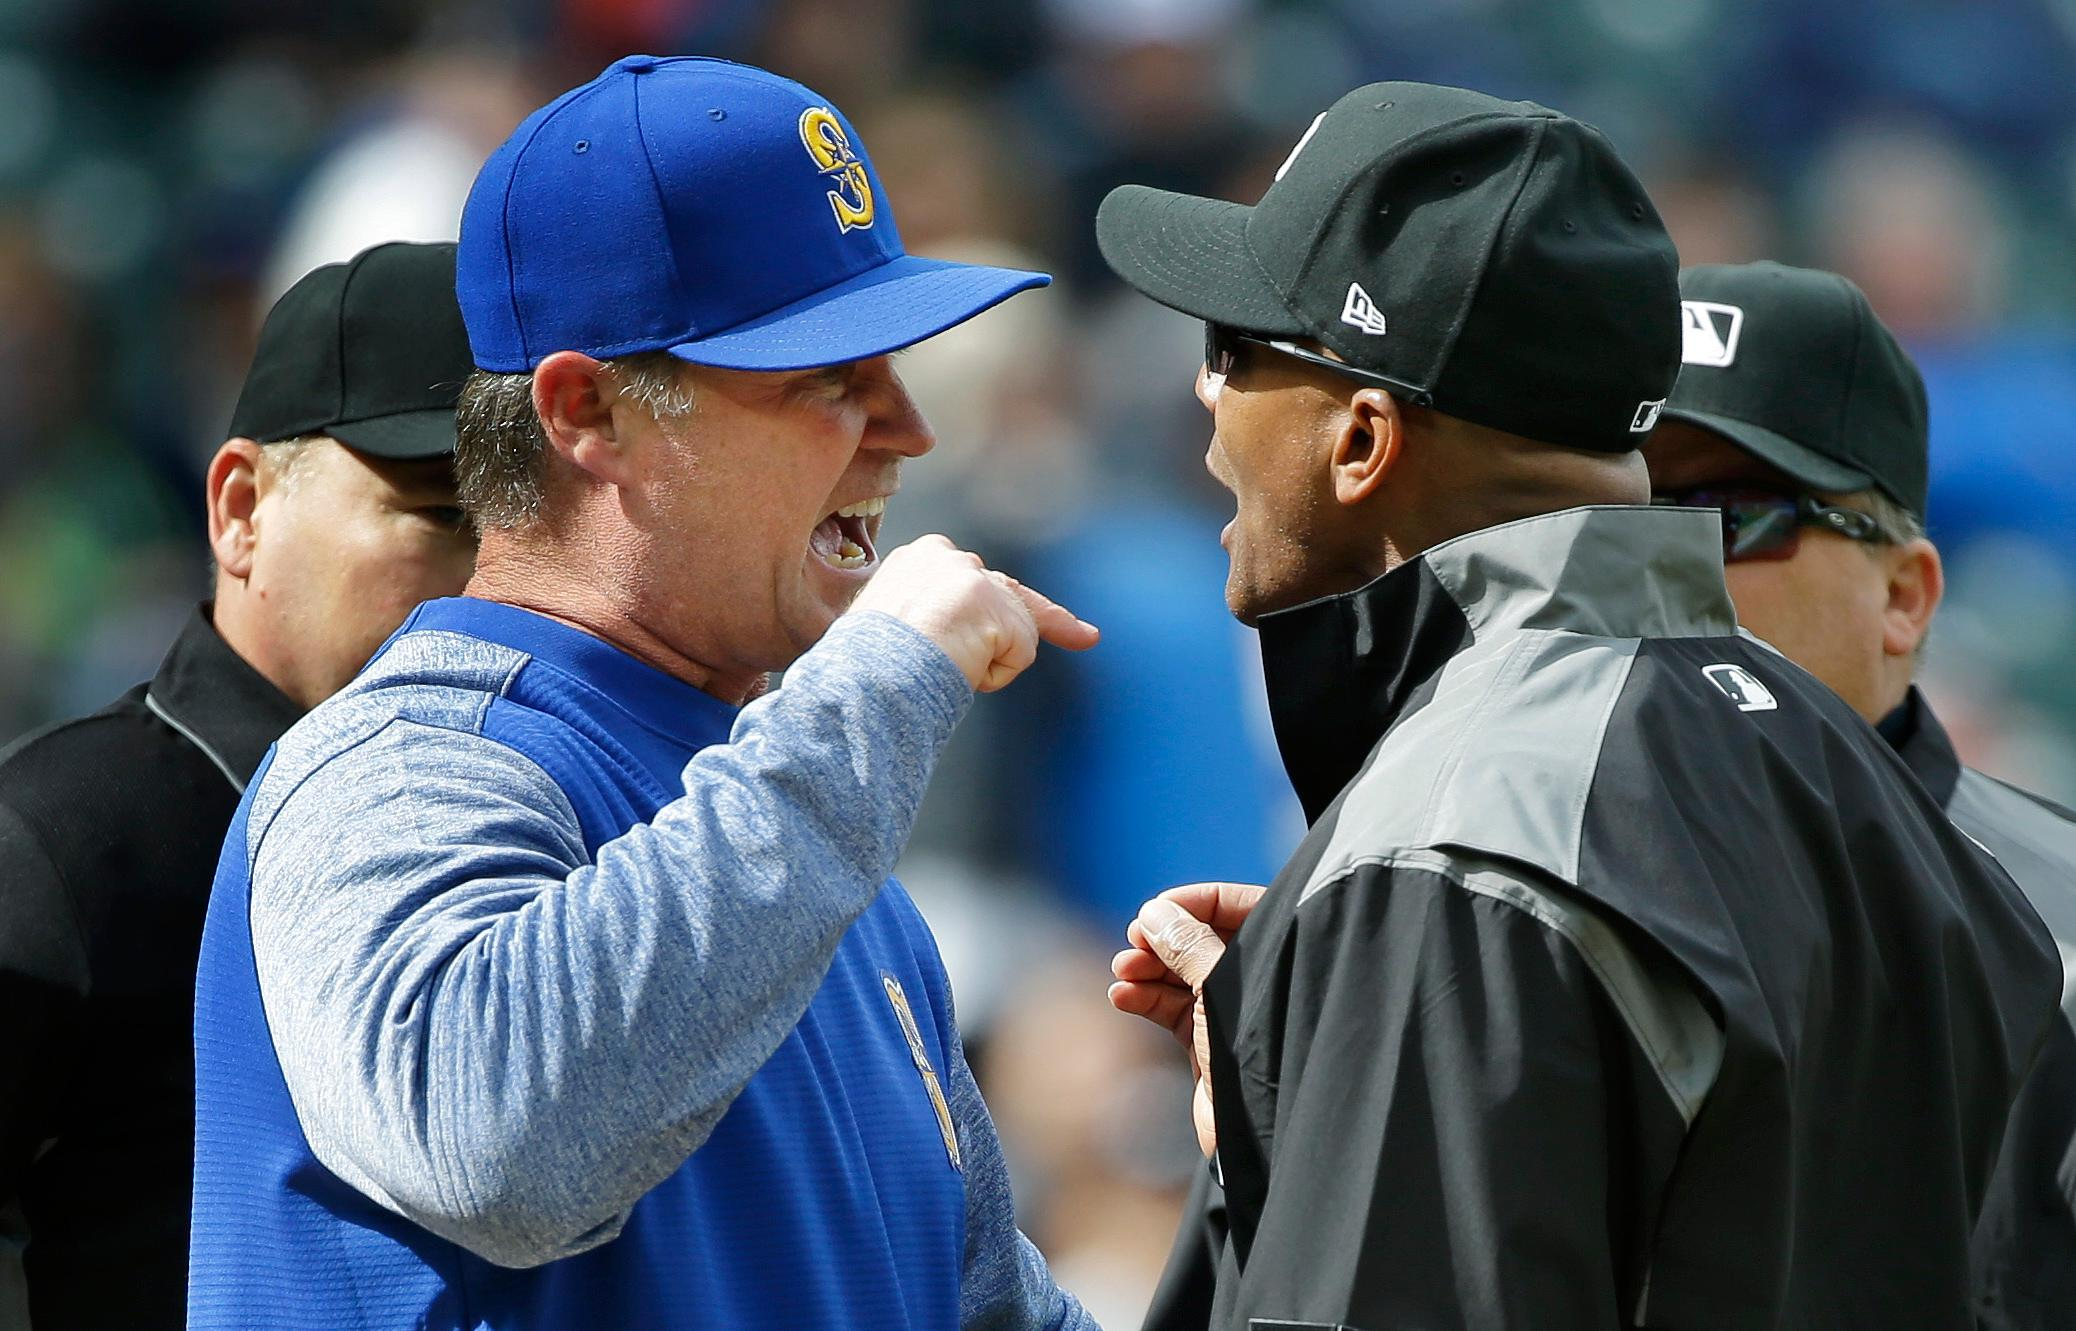 Seattle Mariners manager Scott Servais, left, argues with first base umpire CB Bucknor, right, before being ejected from the game during the sixth inning of a baseball game against the Texas Rangers, Sunday, April 16, 2017, in Seattle. Servais was arguing about a ball hit near the first base foul line by Mariners' Leonys Martin. (AP Photo/Ted S. Warren)